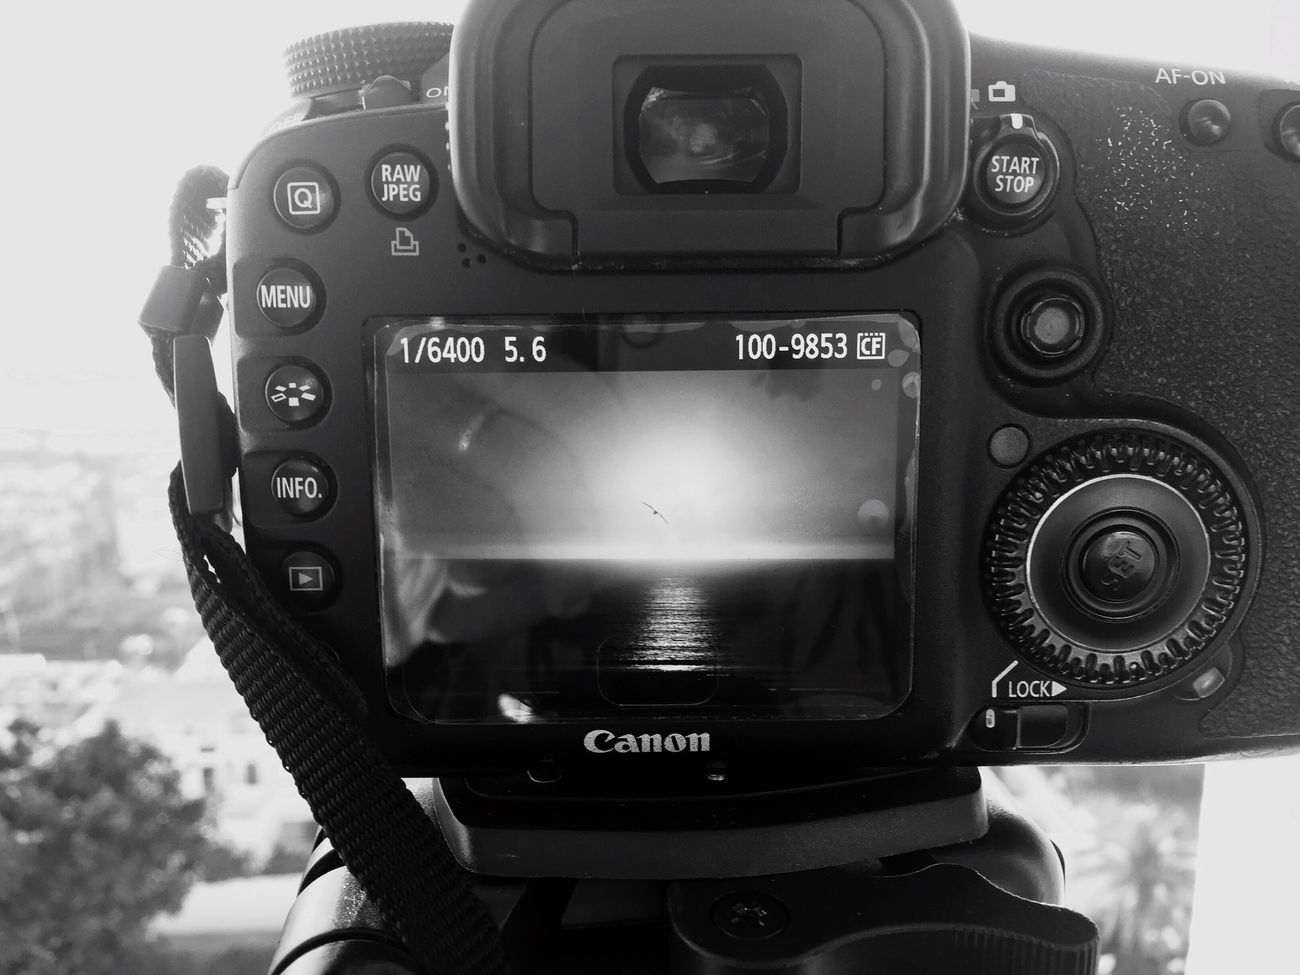 Live For The Story Camera - Photographic Equipment Photography Themes Technology Digital Camera Arts Culture And Entertainment No People Photographing Camera Outdoors Day Close-up Digital Single-lens Reflex Camera Film Industry Canon Canonphotography Canon_photos